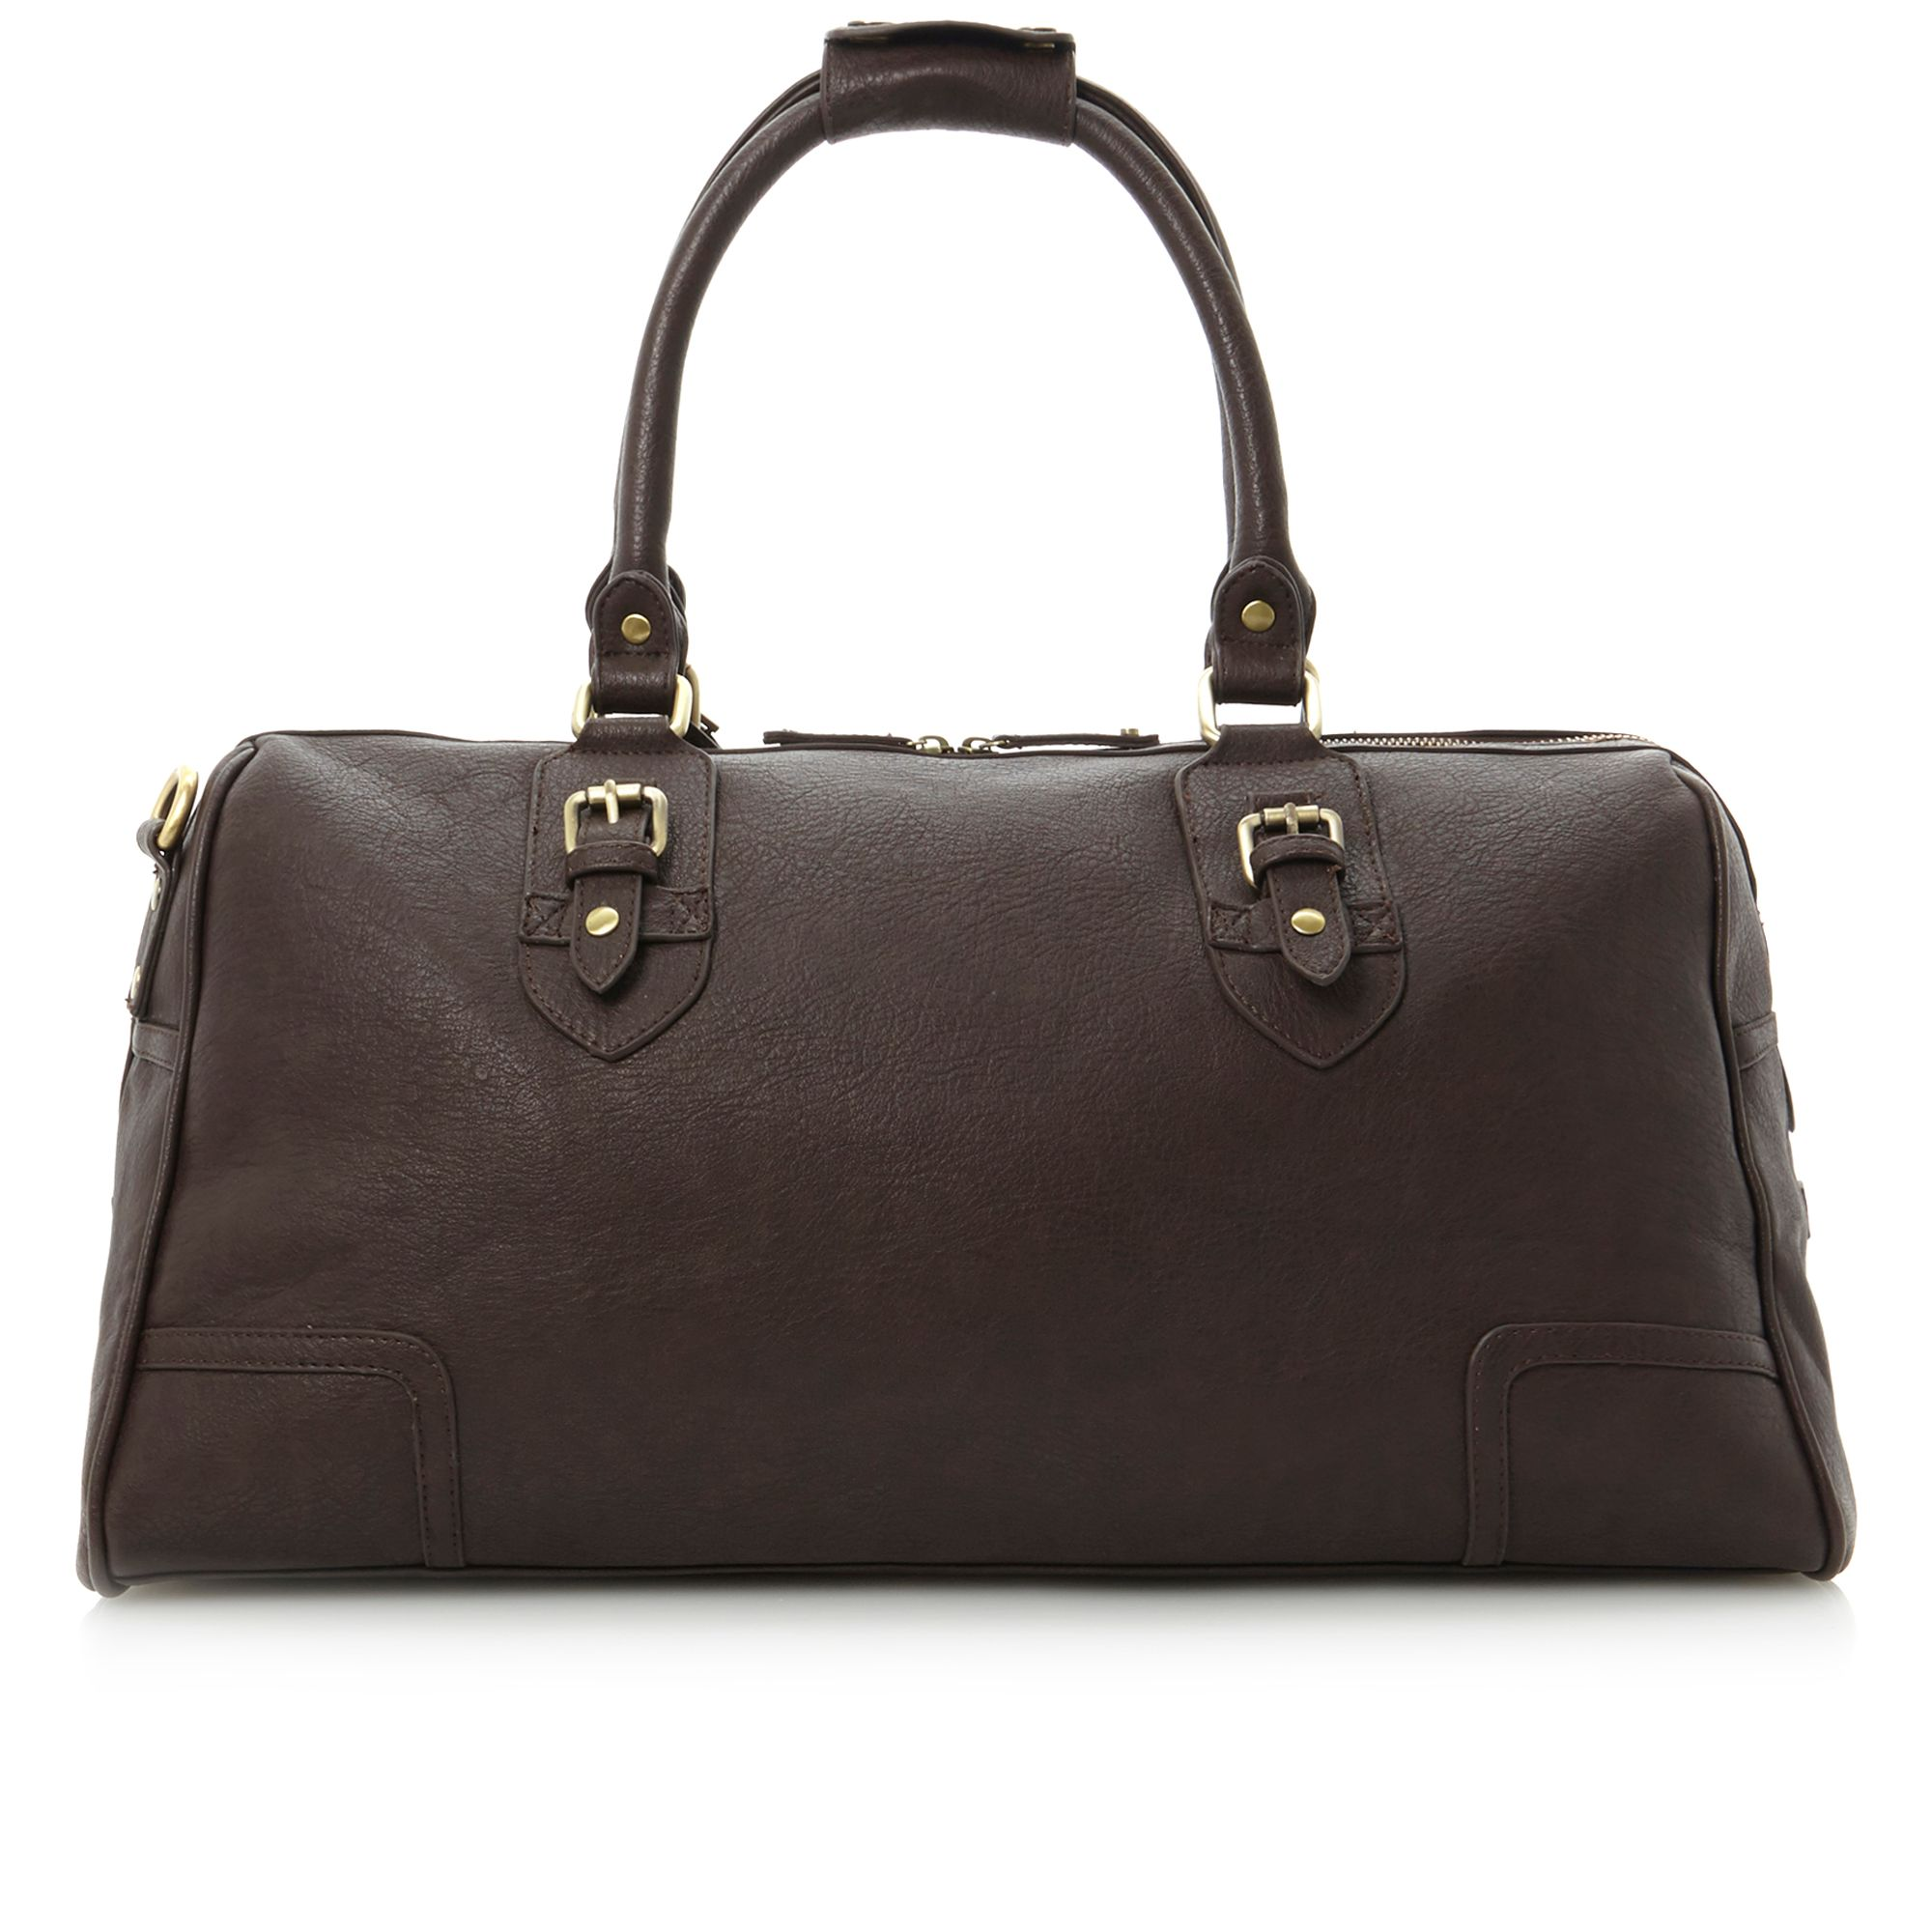 Paddal buckle detail mens holdall bag